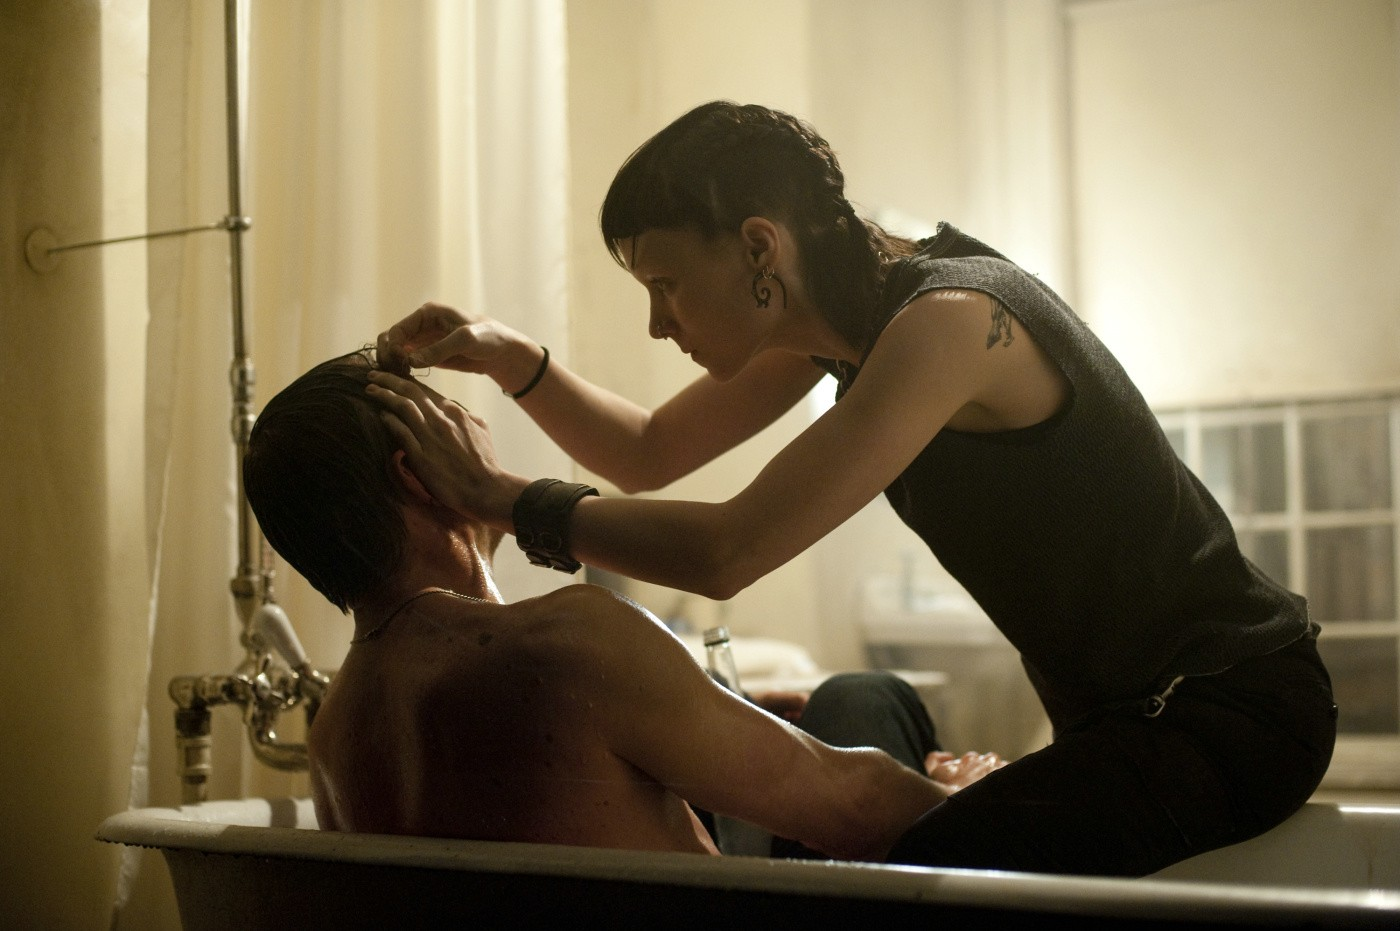 The Girl with the Dragon Tattoo Movie Review: The Girl With the Dragon Tattoo (2011)